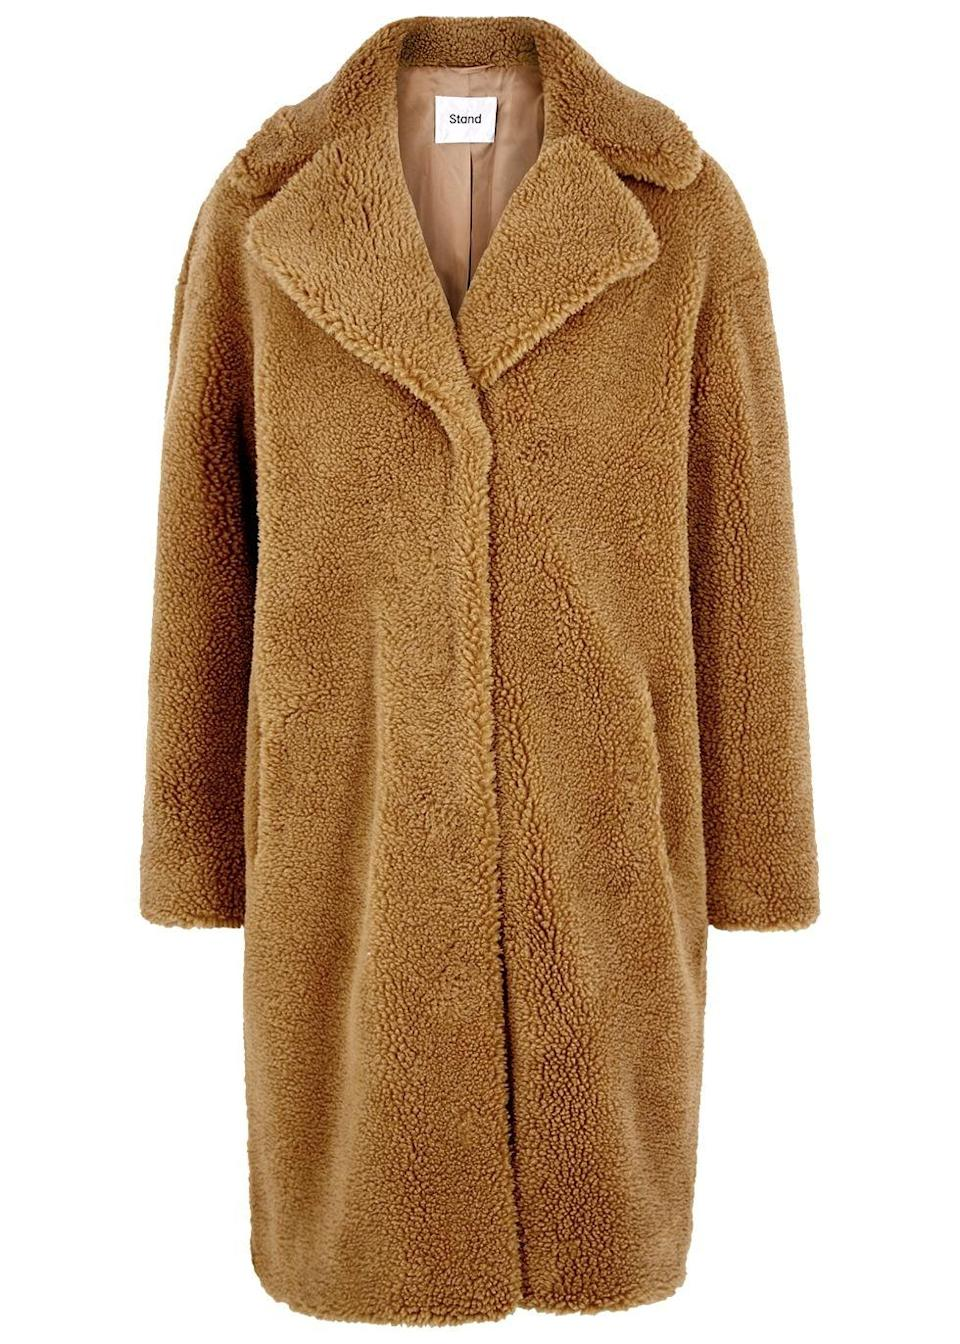 """<p><a class=""""link rapid-noclick-resp"""" href=""""https://www.harveynichols.com/brand/stand/284482-camille-brown-faux-shearling-coat/p3217050/"""" rel=""""nofollow noopener"""" target=""""_blank"""" data-ylk=""""slk:SHOP NOW"""">SHOP NOW</a></p><p>The teddy coat is a whole category in itself, of course, but we couldn't resist adding this cosy Staud version into our round-up. Cut in an oversized shape from tactile faux shearling, it's detailed with generous lapels and has concealed snap fastenings through the front.</p><p>Camille Camel Teddy Coat, £260, Stand Studio</p>"""